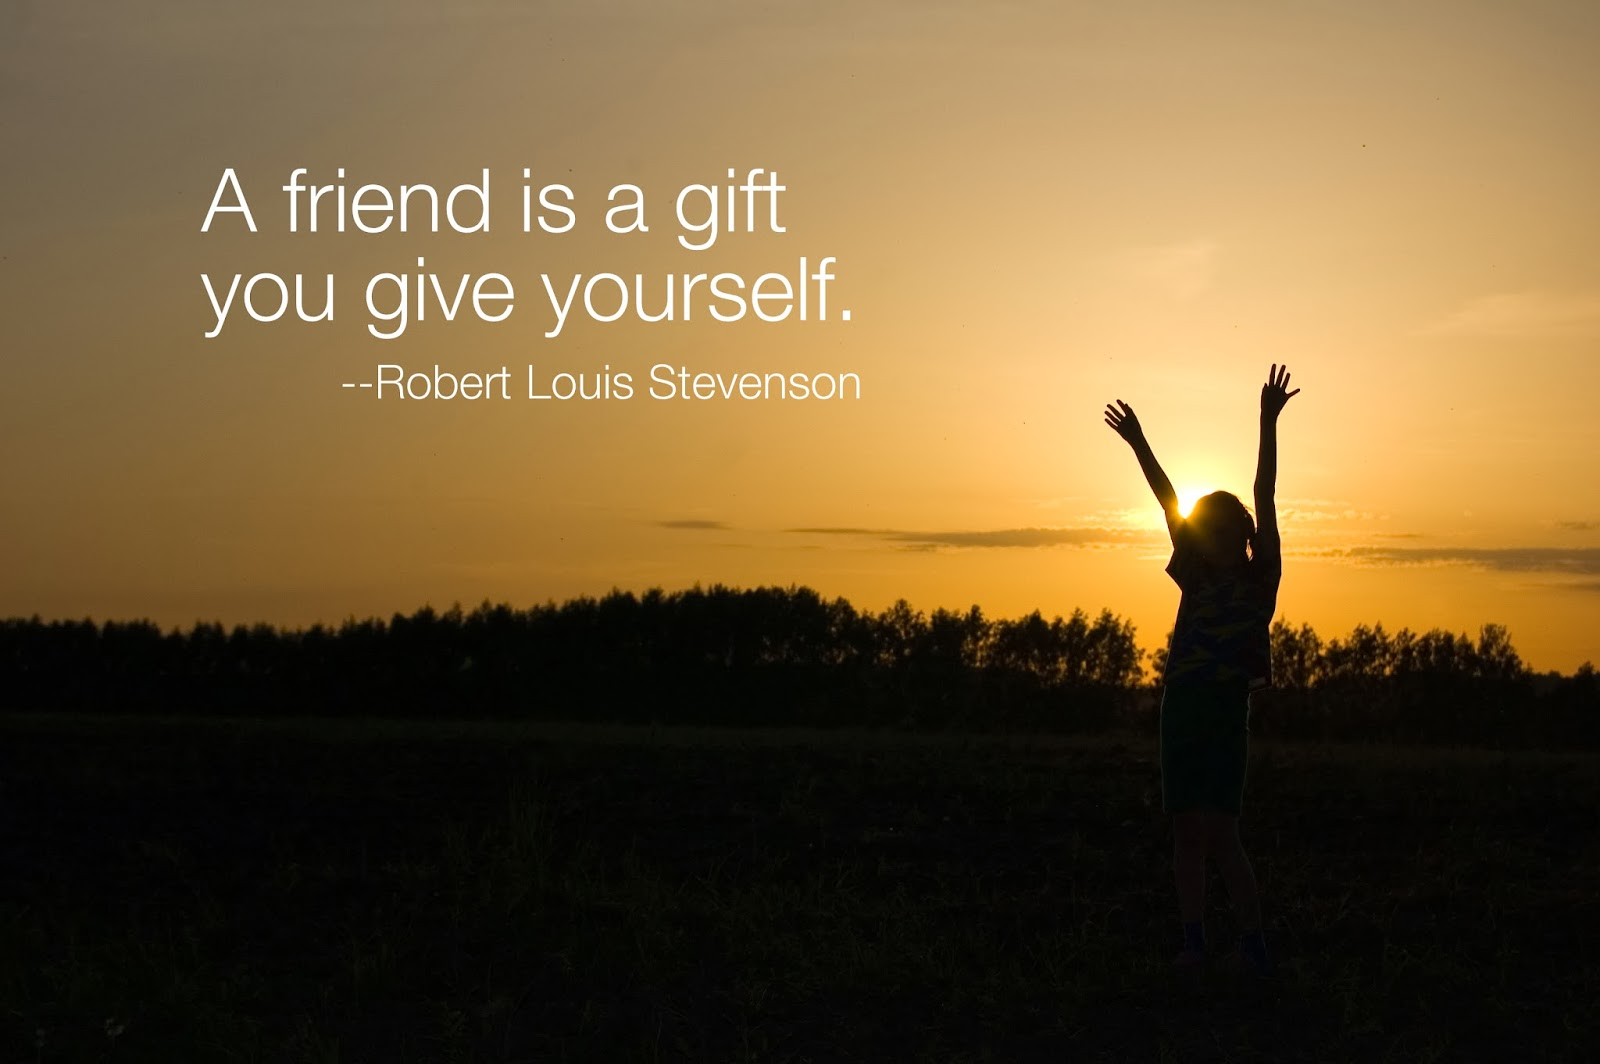 Be a friend to yourself